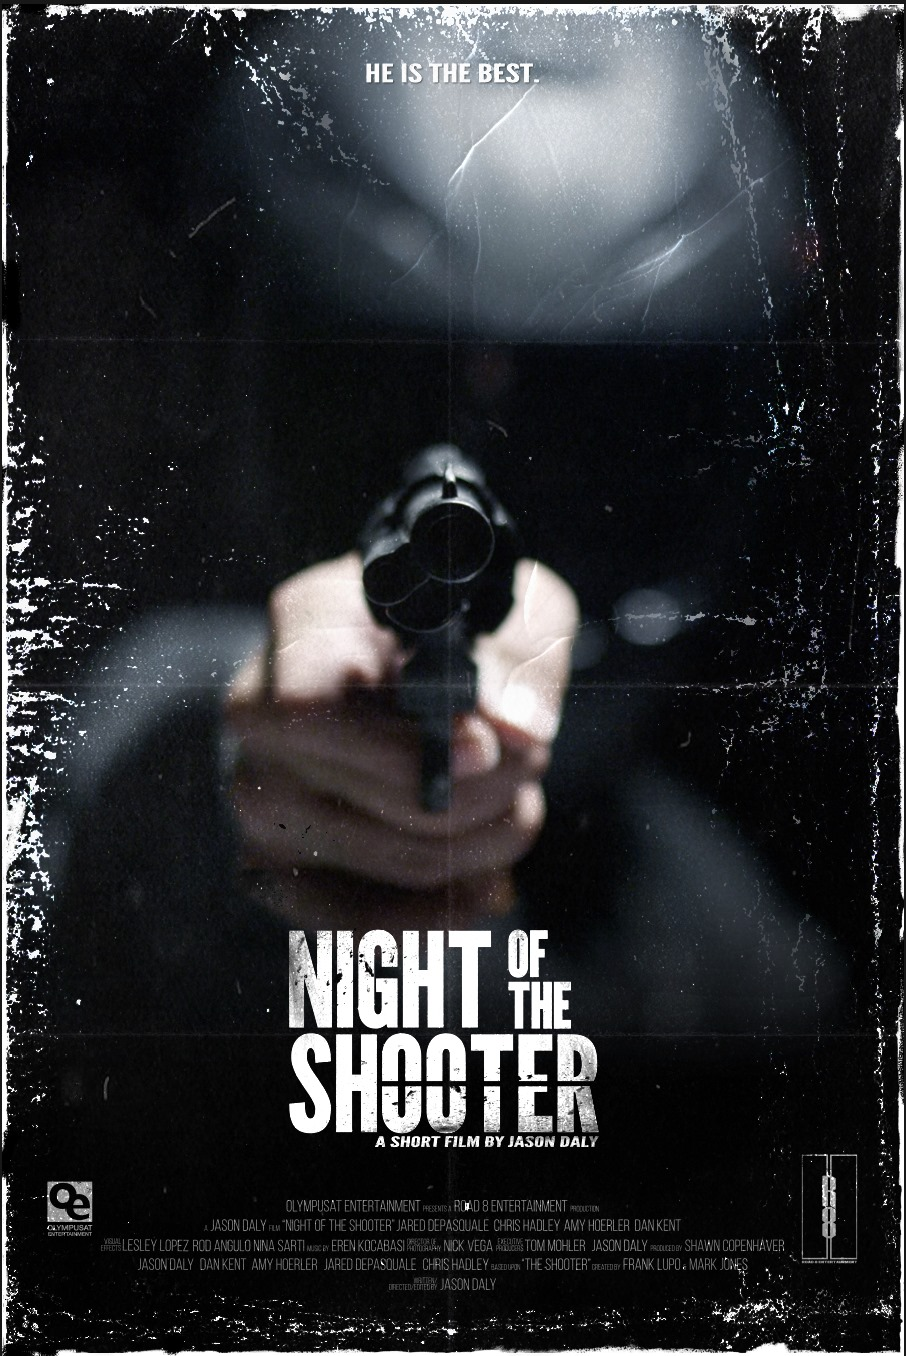 Night of the Shooter